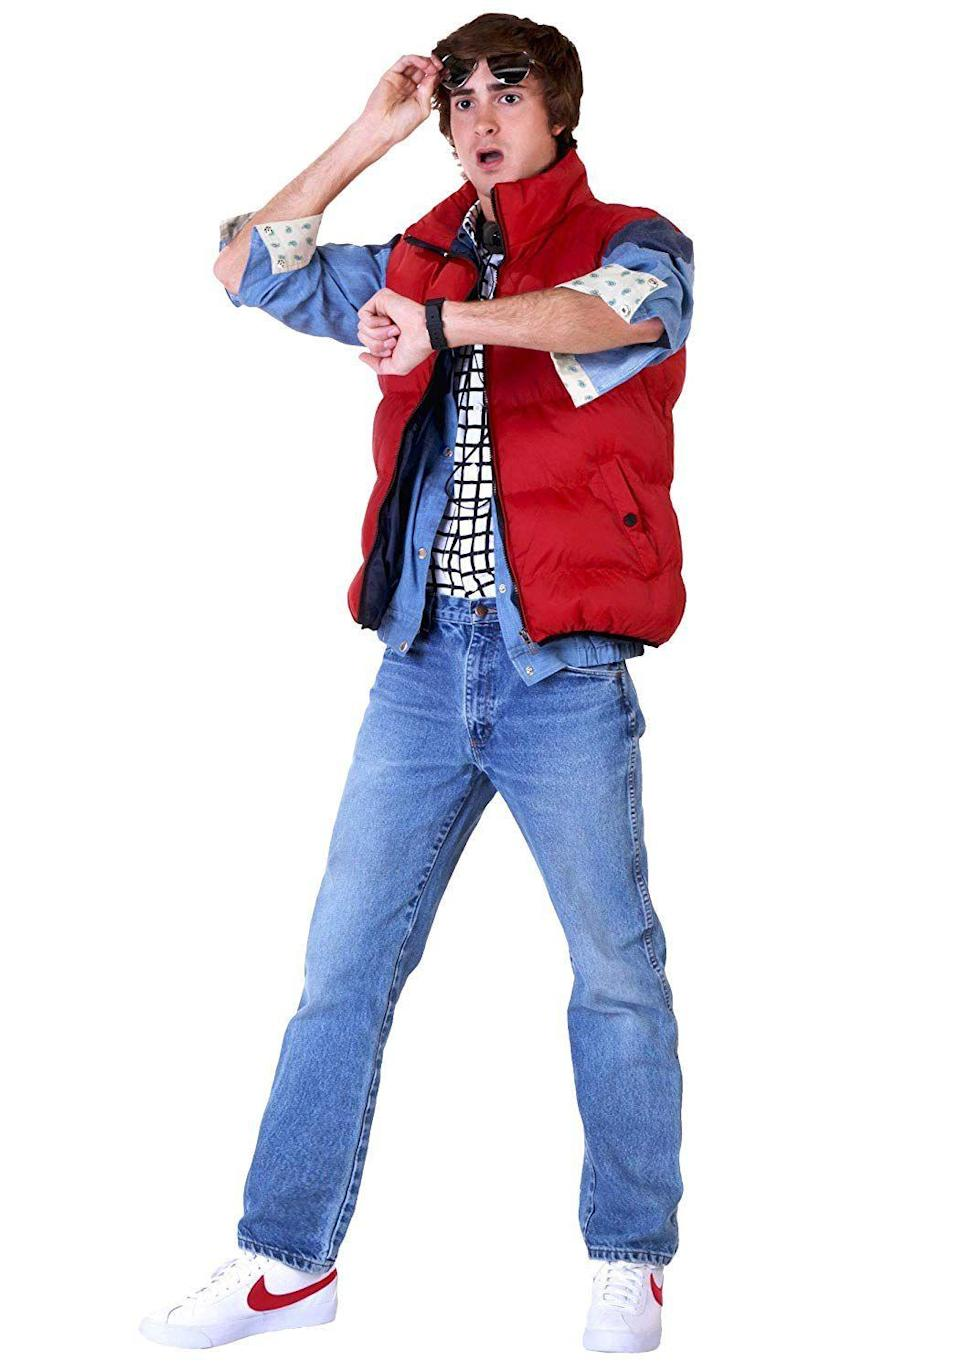 """<p><strong>Fun Costumes</strong></p><p>amazon.com</p><p><strong>$69.99</strong></p><p><a href=""""https://www.amazon.com/dp/B00G4HOCT8?tag=syn-yahoo-20&ascsubtag=%5Bartid%7C10070.g.22646261%5Bsrc%7Cyahoo-us"""" rel=""""nofollow noopener"""" target=""""_blank"""" data-ylk=""""slk:SHOP NOW"""" class=""""link rapid-noclick-resp"""">SHOP NOW</a></p><p>To complete your <em>Back to the Future </em>look, all you need is a friend to dress as Doc and a DeLorean. Should be easy, right? </p>"""